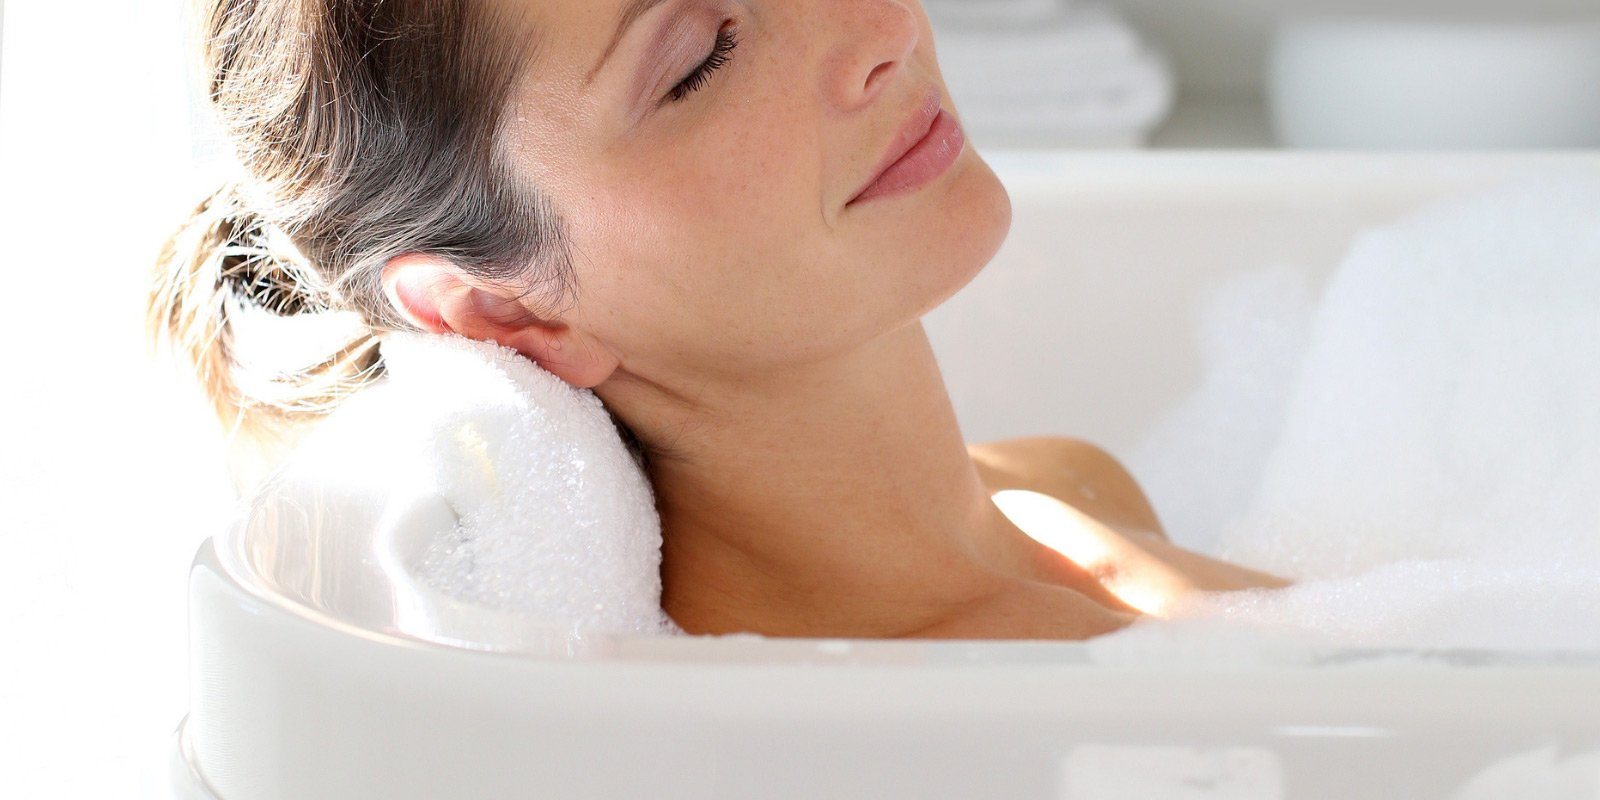 9 Easy Ways to Have a Relaxing Bubble Bath